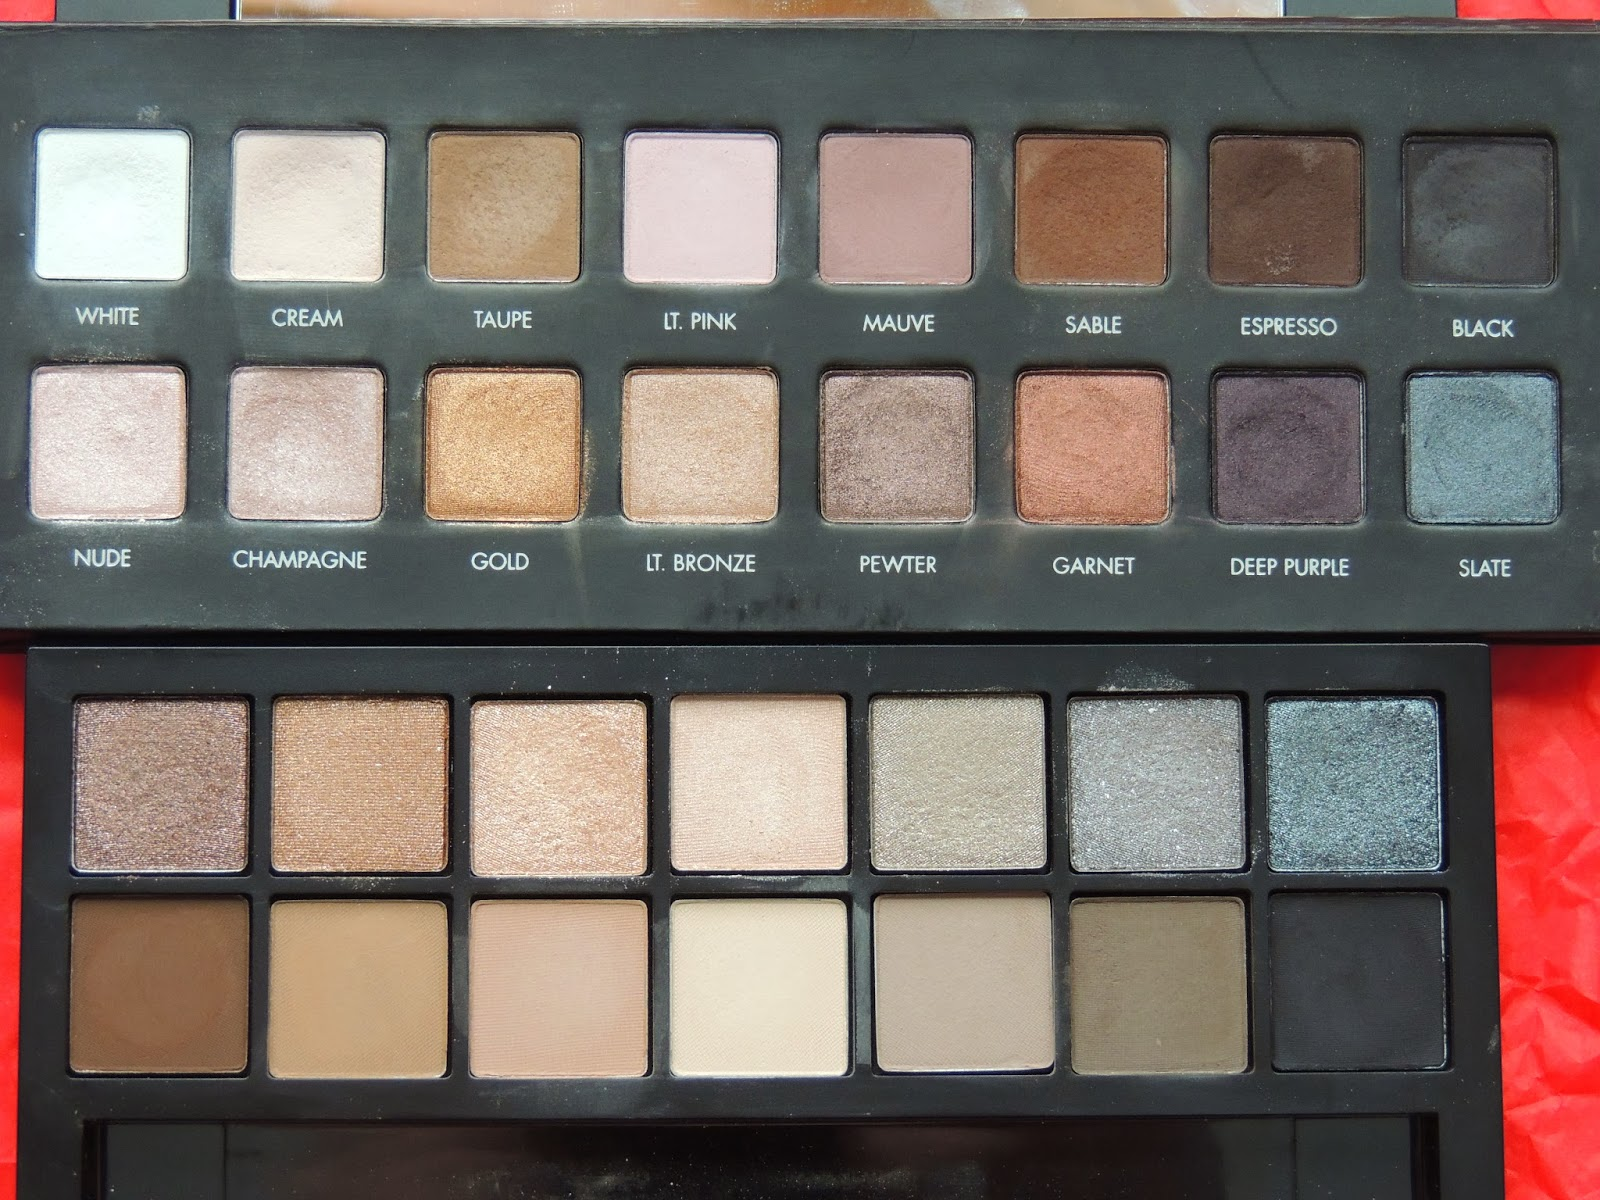 Brittany S Secret Smashbox Full Exposure Palette Vs Lorac